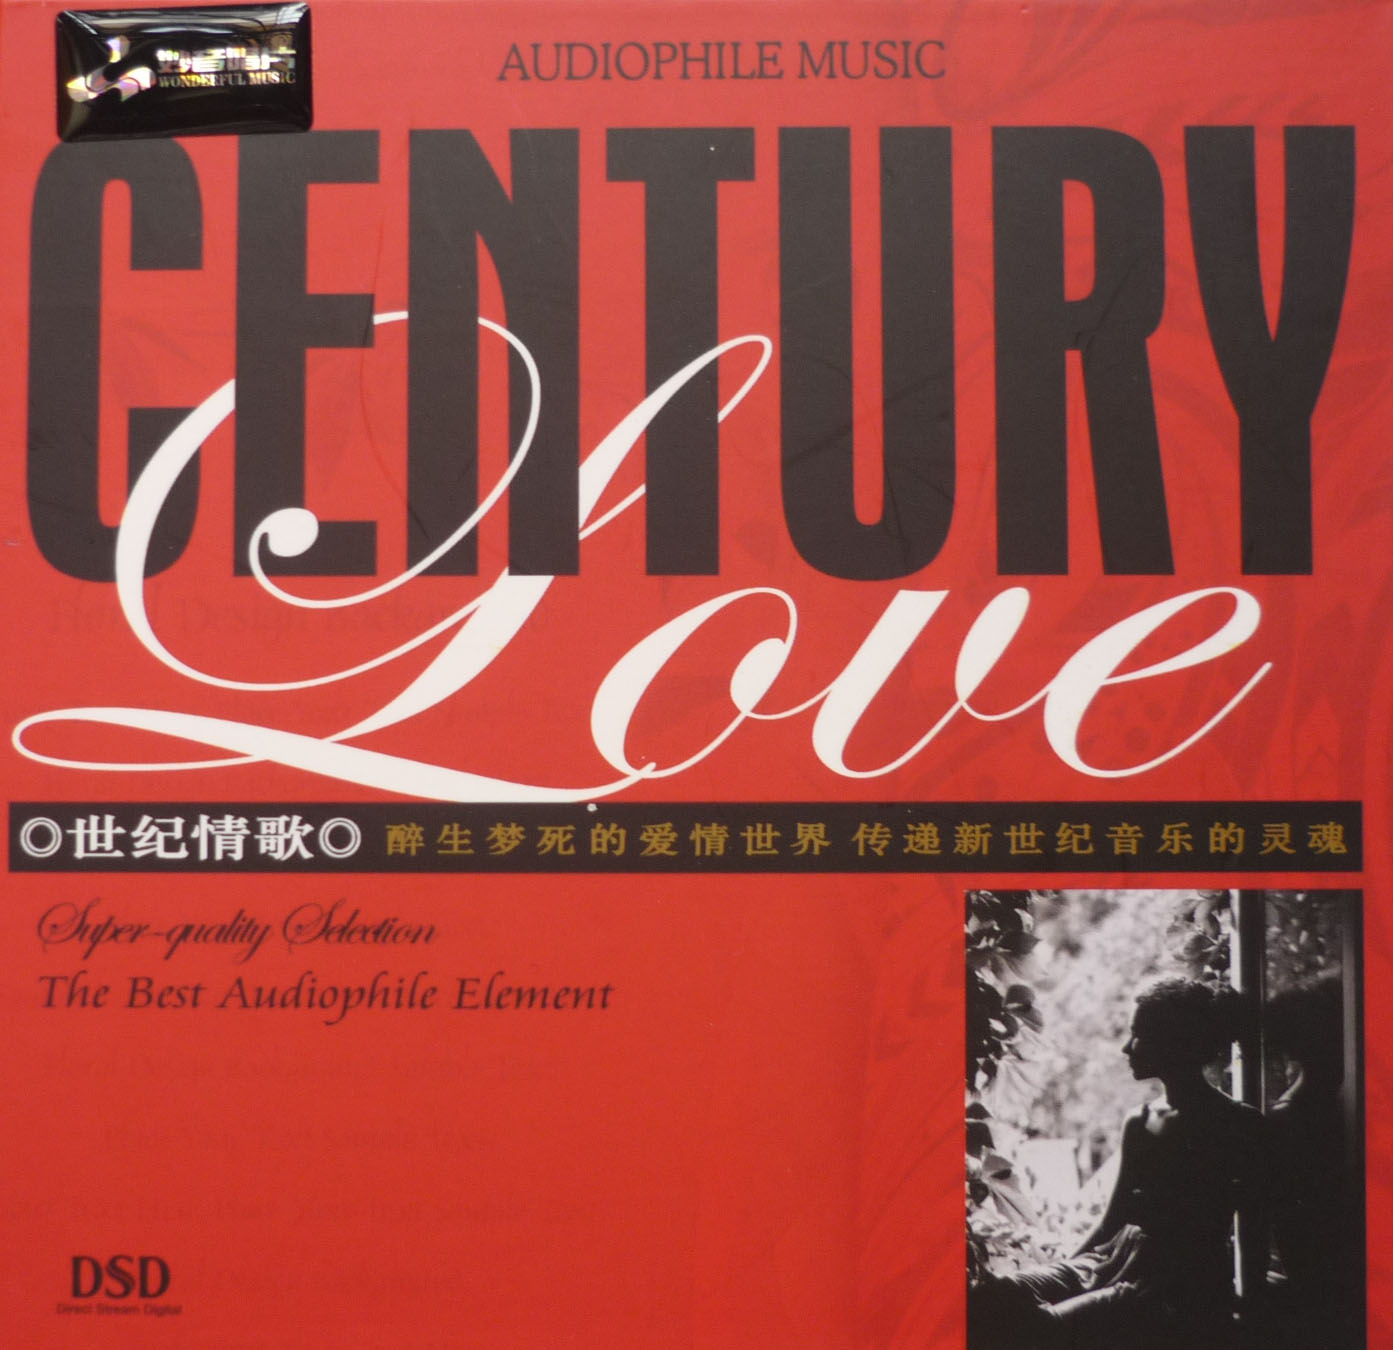 VA - Century Love - China Audiophile (2006)[WAV] - Lossless